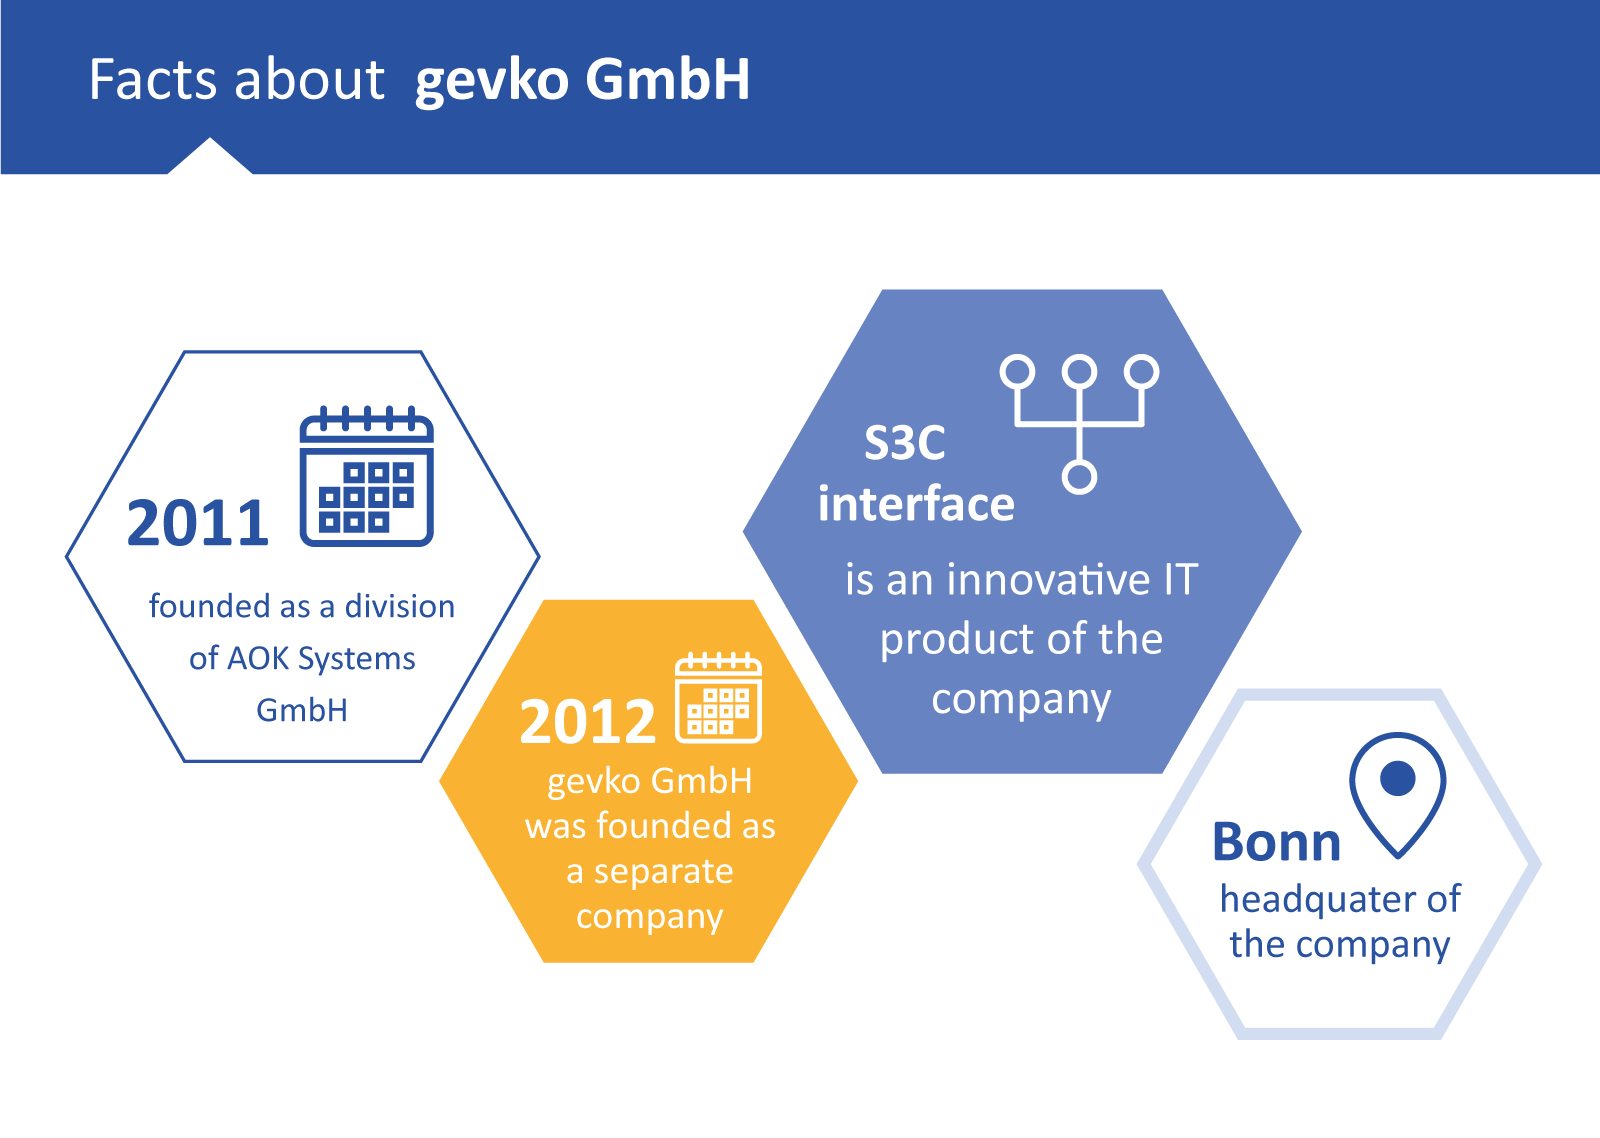 Facts about gevko GmbH, the specialist for S3C interfaces